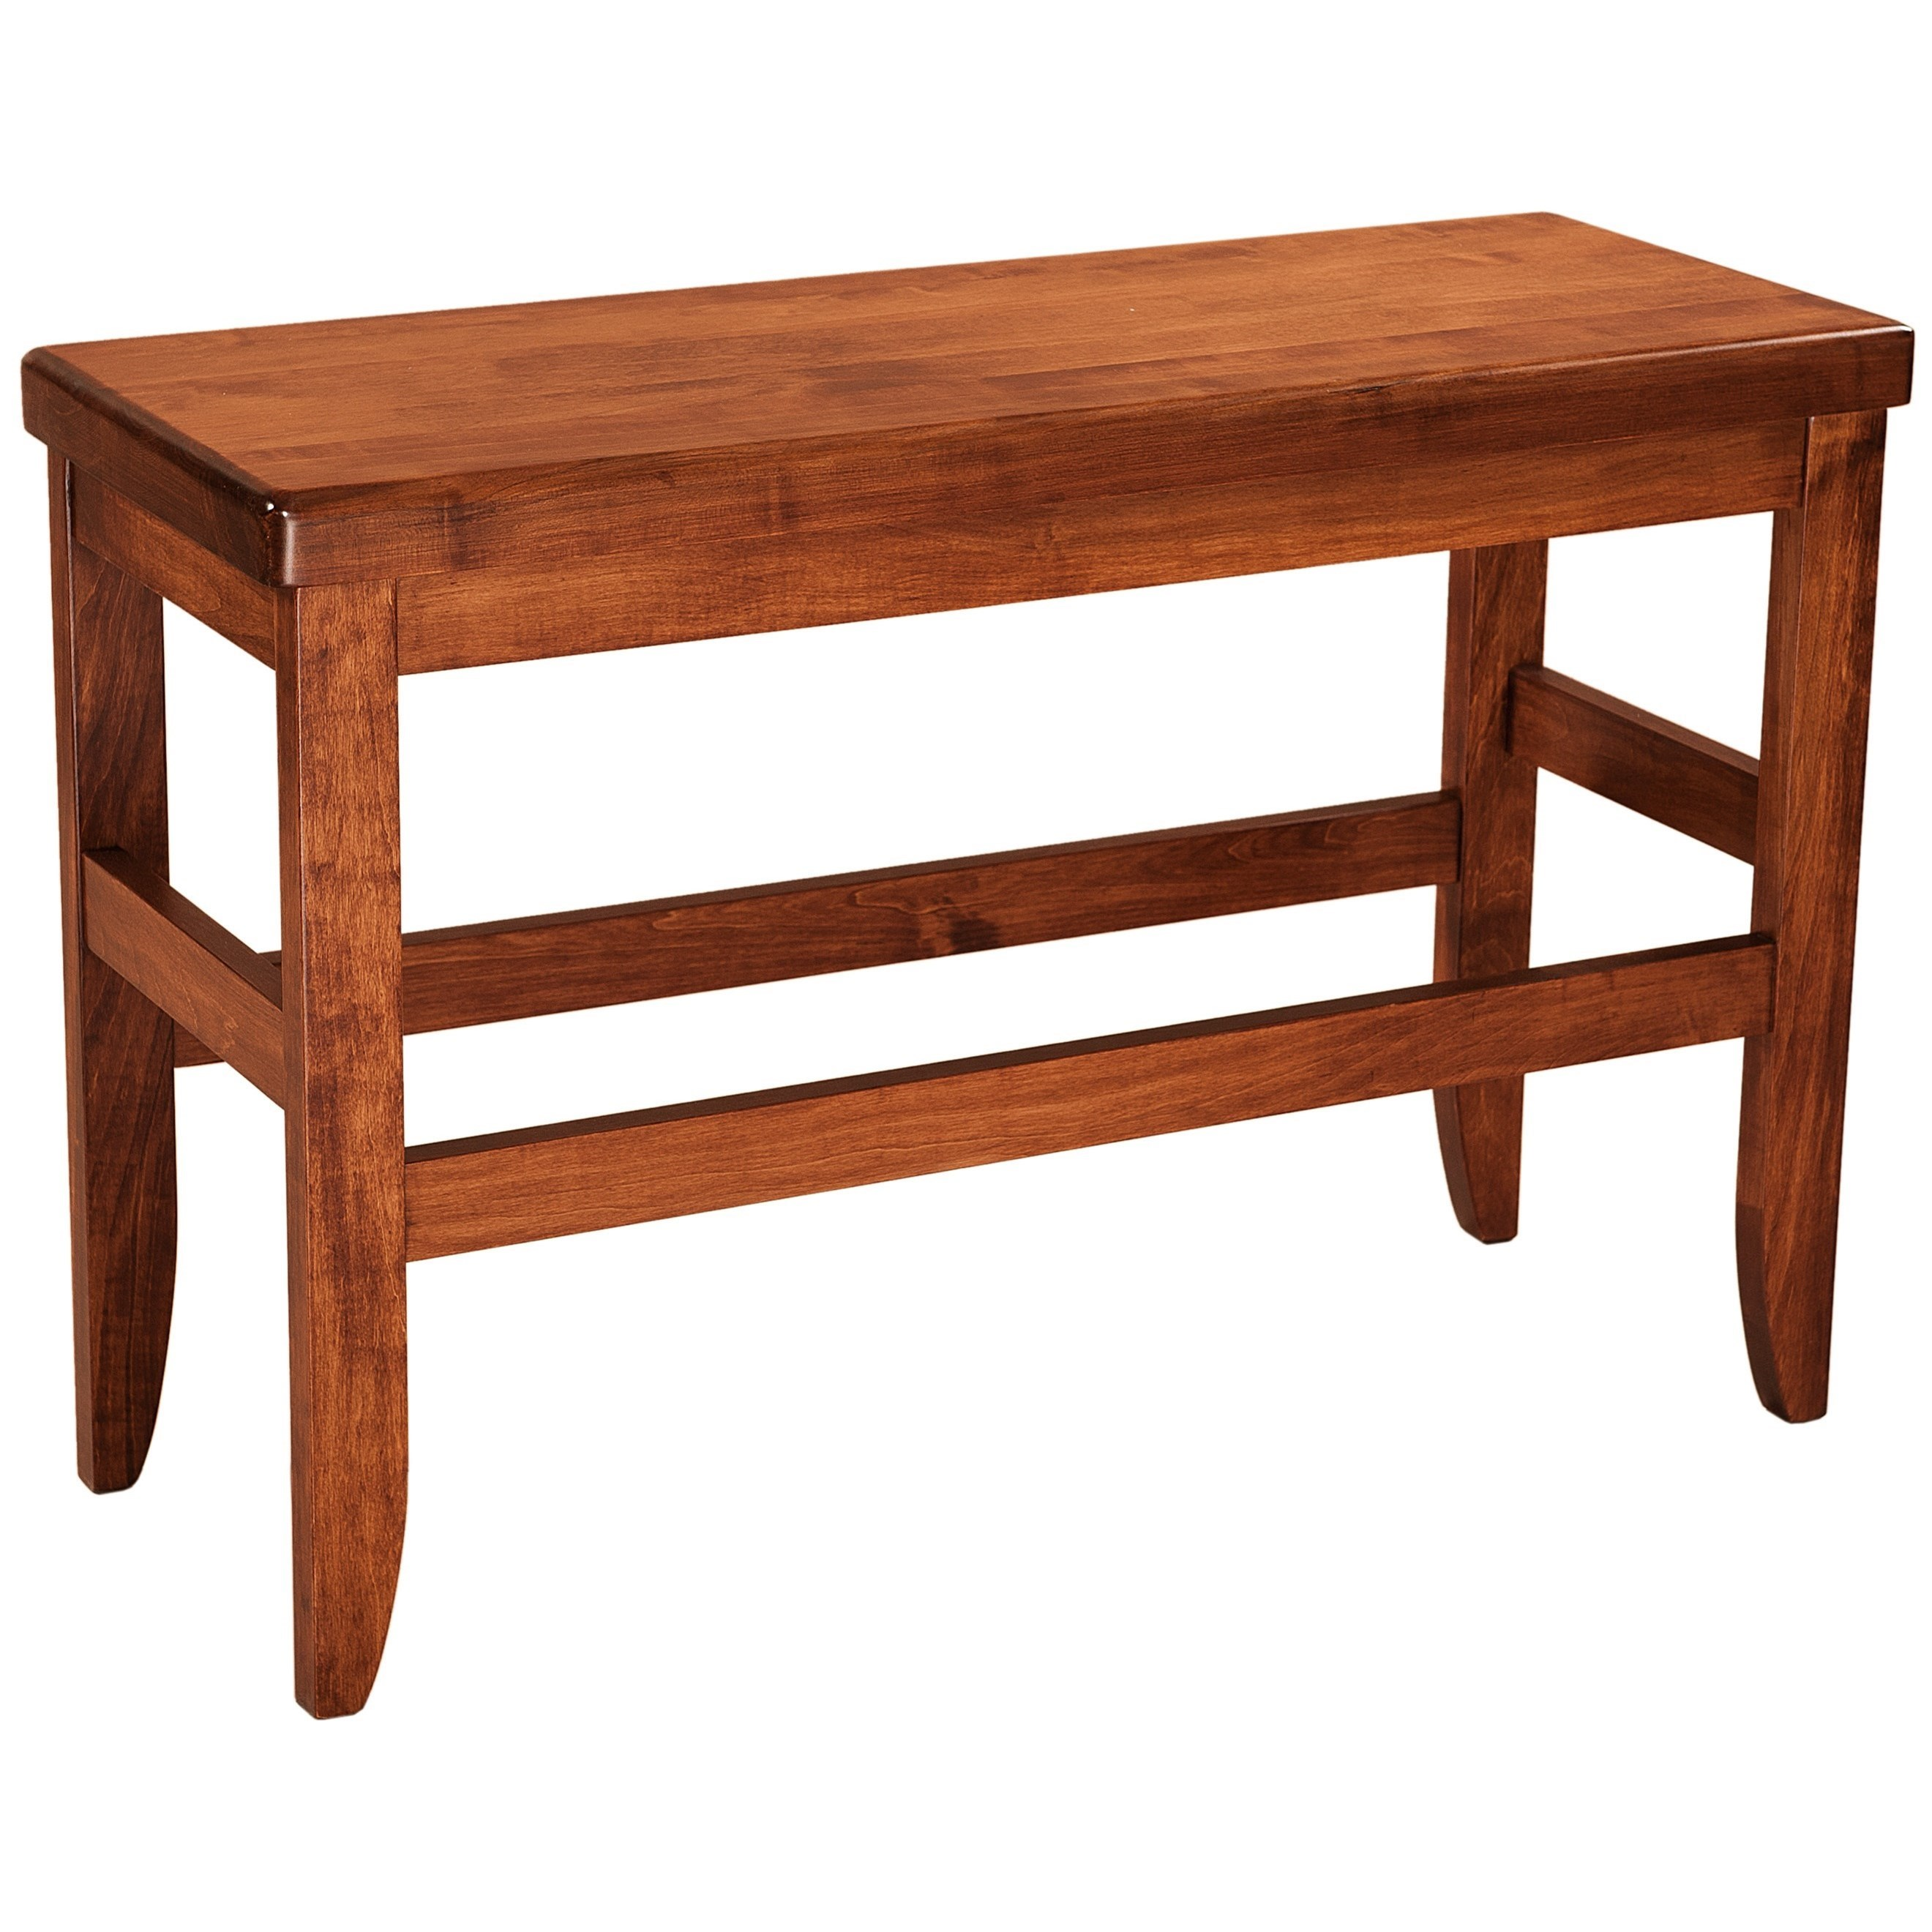 """Clifton Bench 30""""h x 72""""w - Wood Seat by F&N Woodworking at Wayside Furniture"""